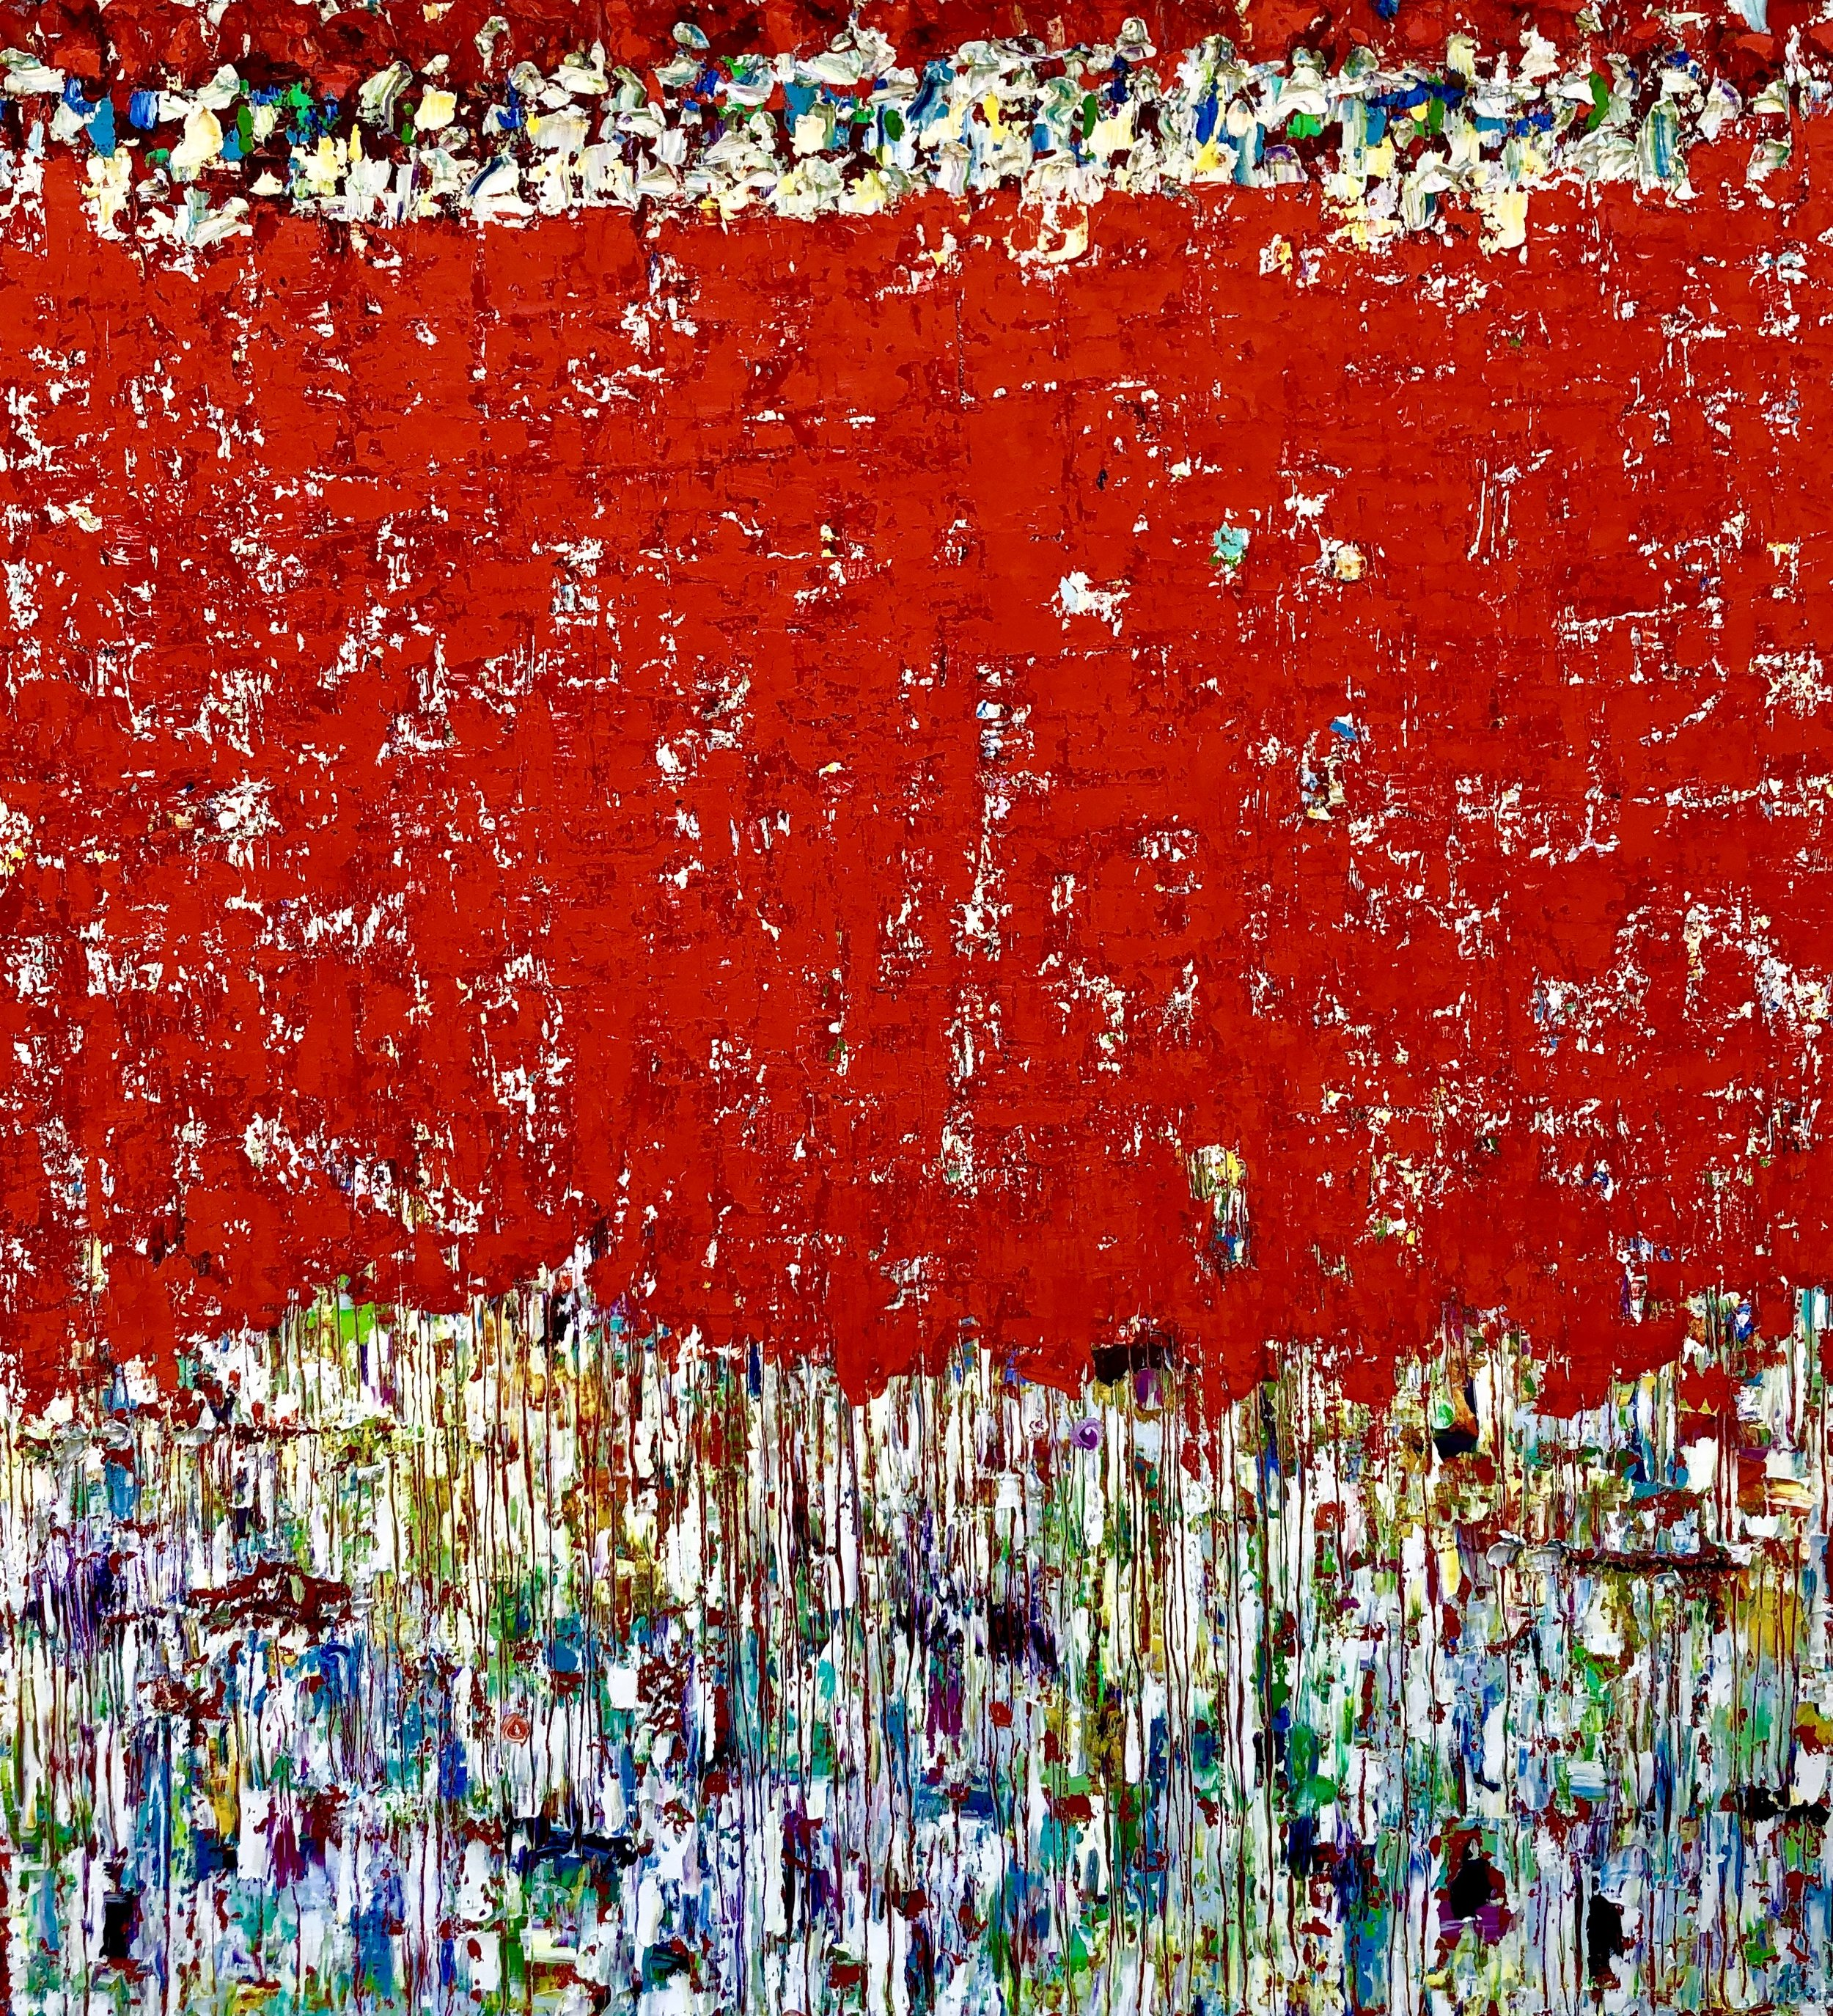 """Red Rover, Red Rover"" 77"" x 68"" x 2.5"" oil on canvas"